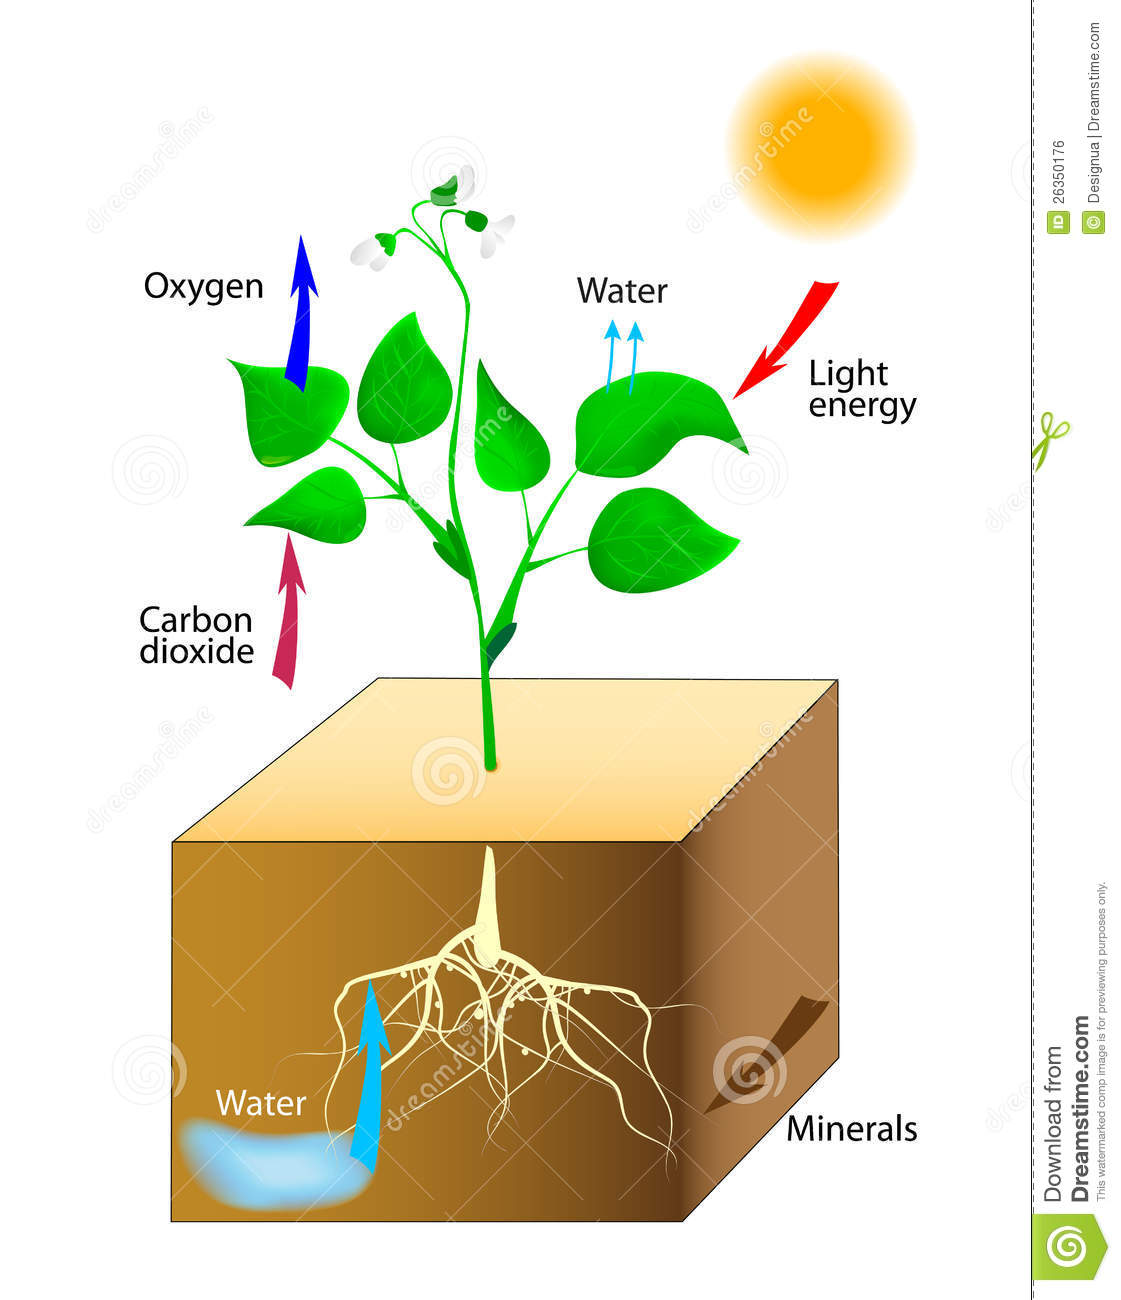 photosythesis in the The evolution of photosynthesis refers to the origin and subsequent evolution of photosynthesis, the process by which light energy synthesizes sugars from carbon dioxide, releasing oxygen as a waste product.